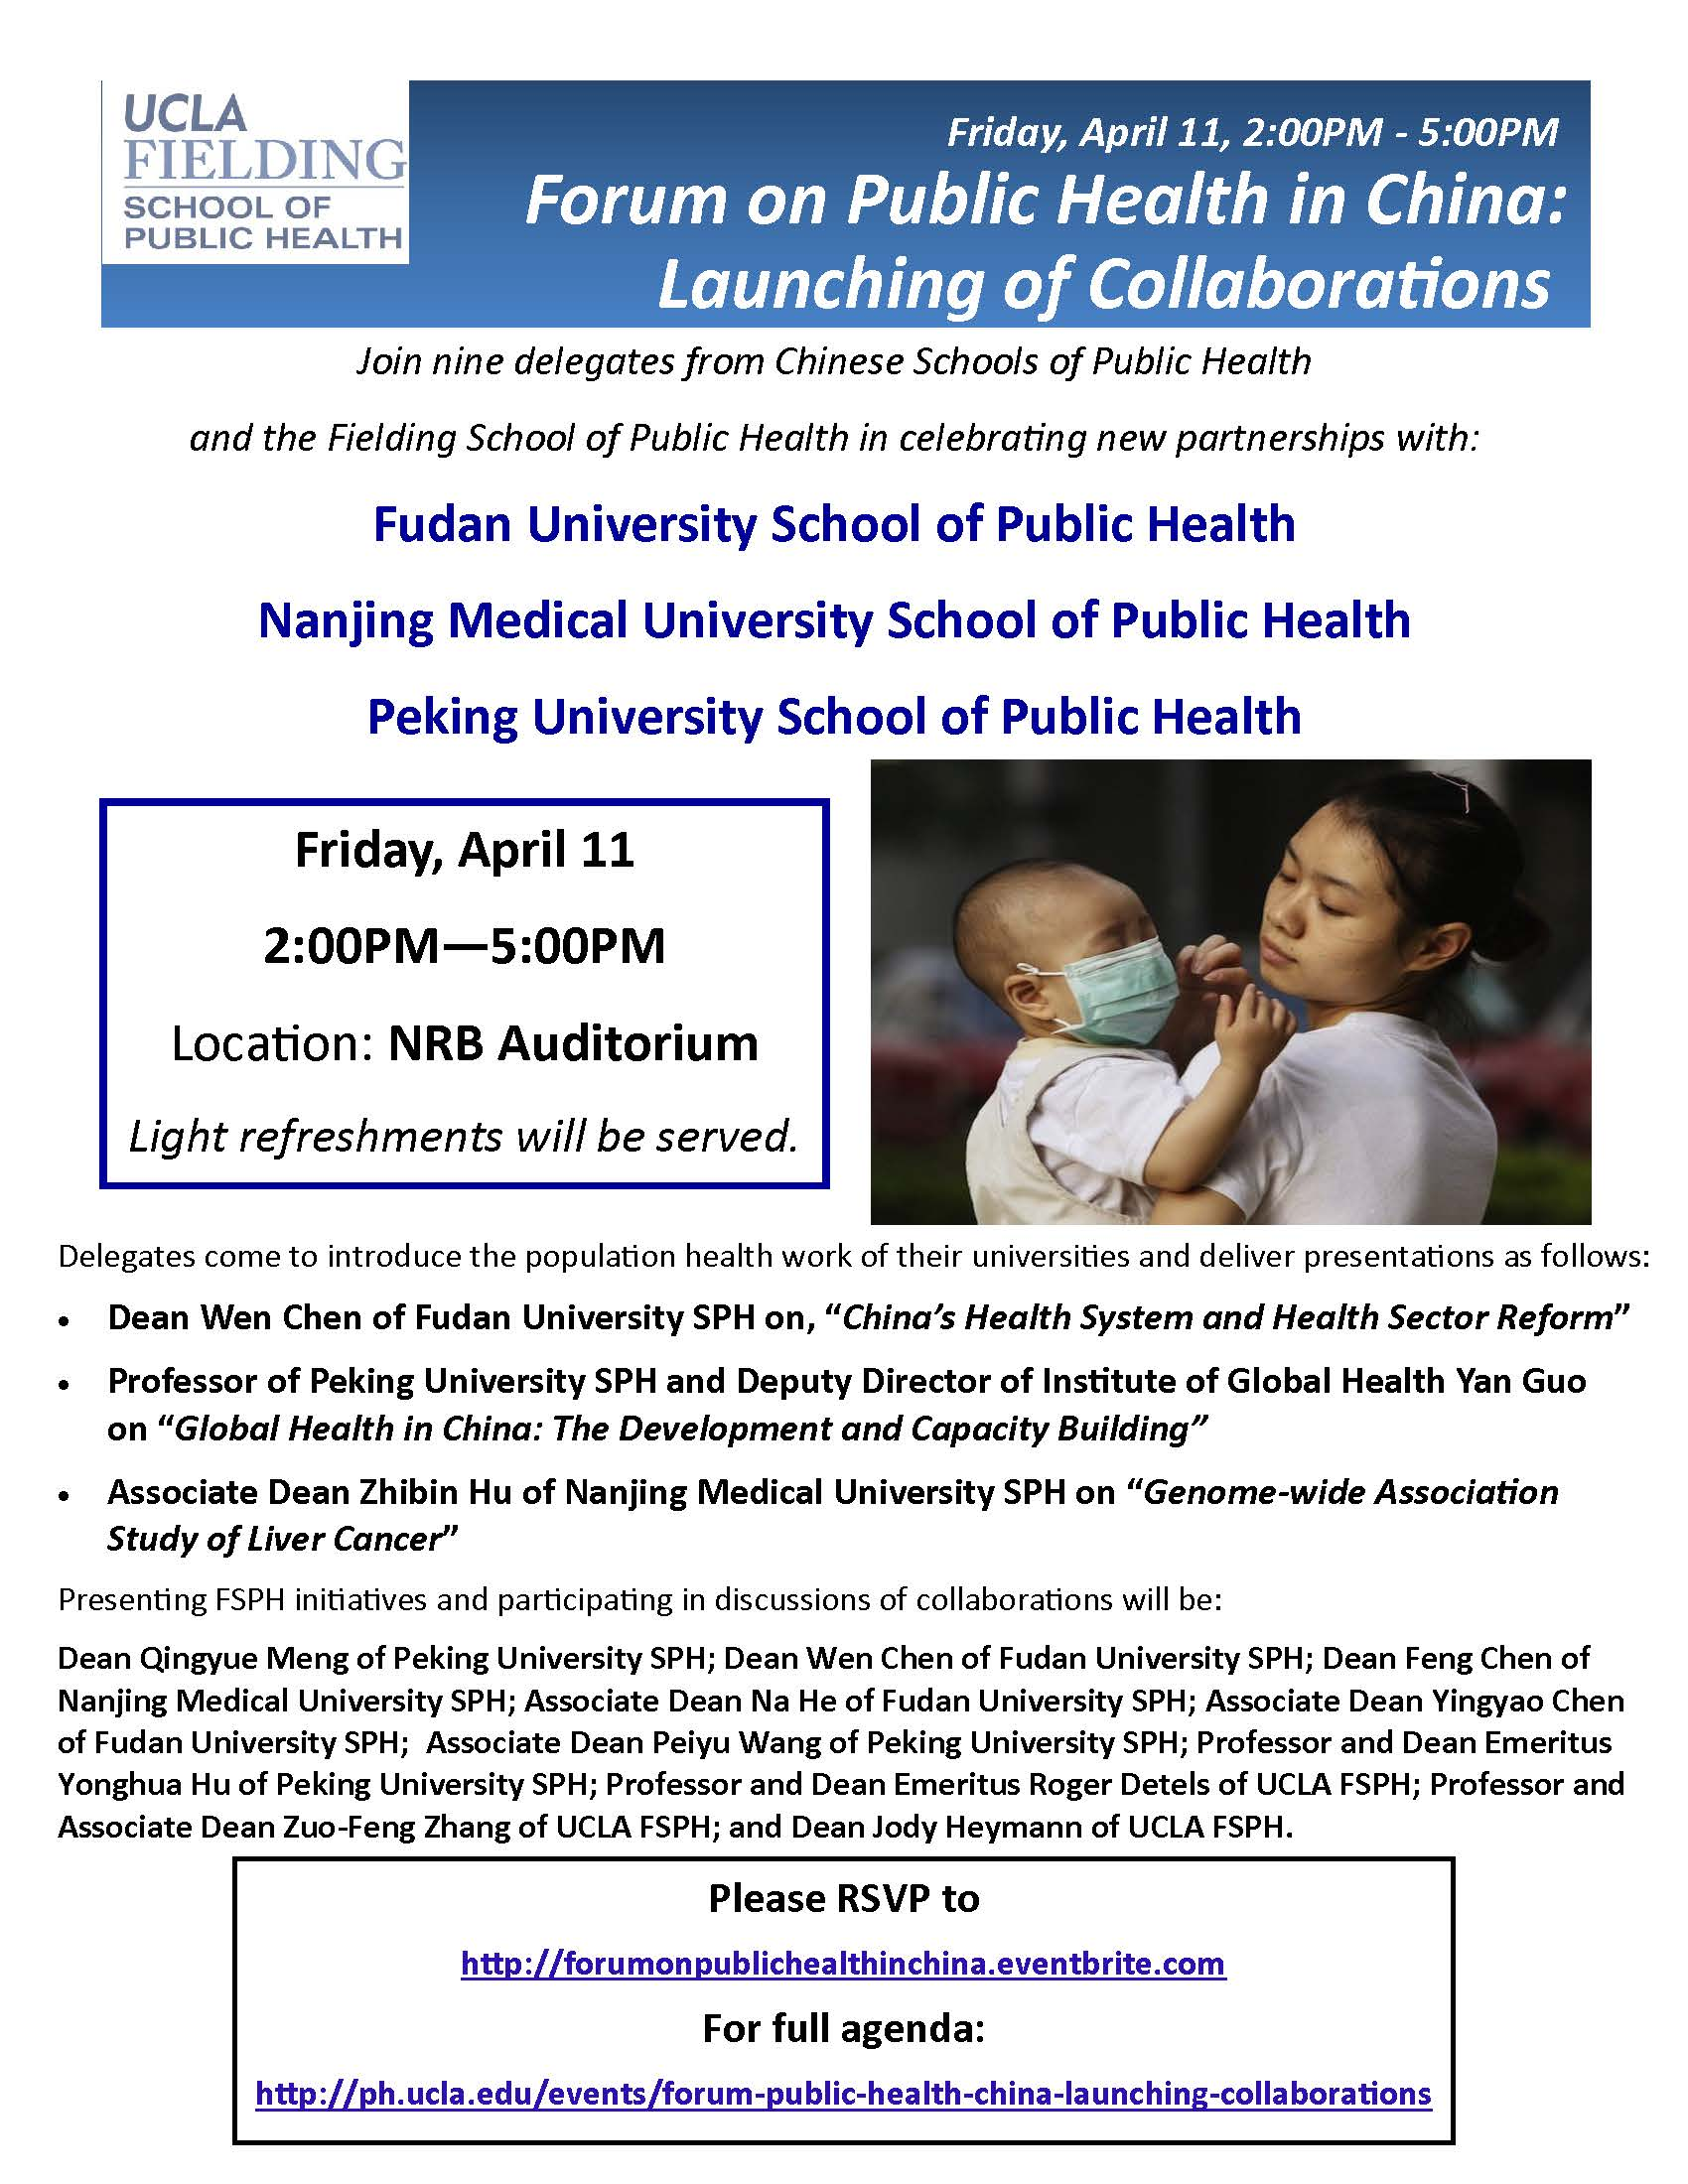 Forum on Public Health in China: Launching of Collaborations